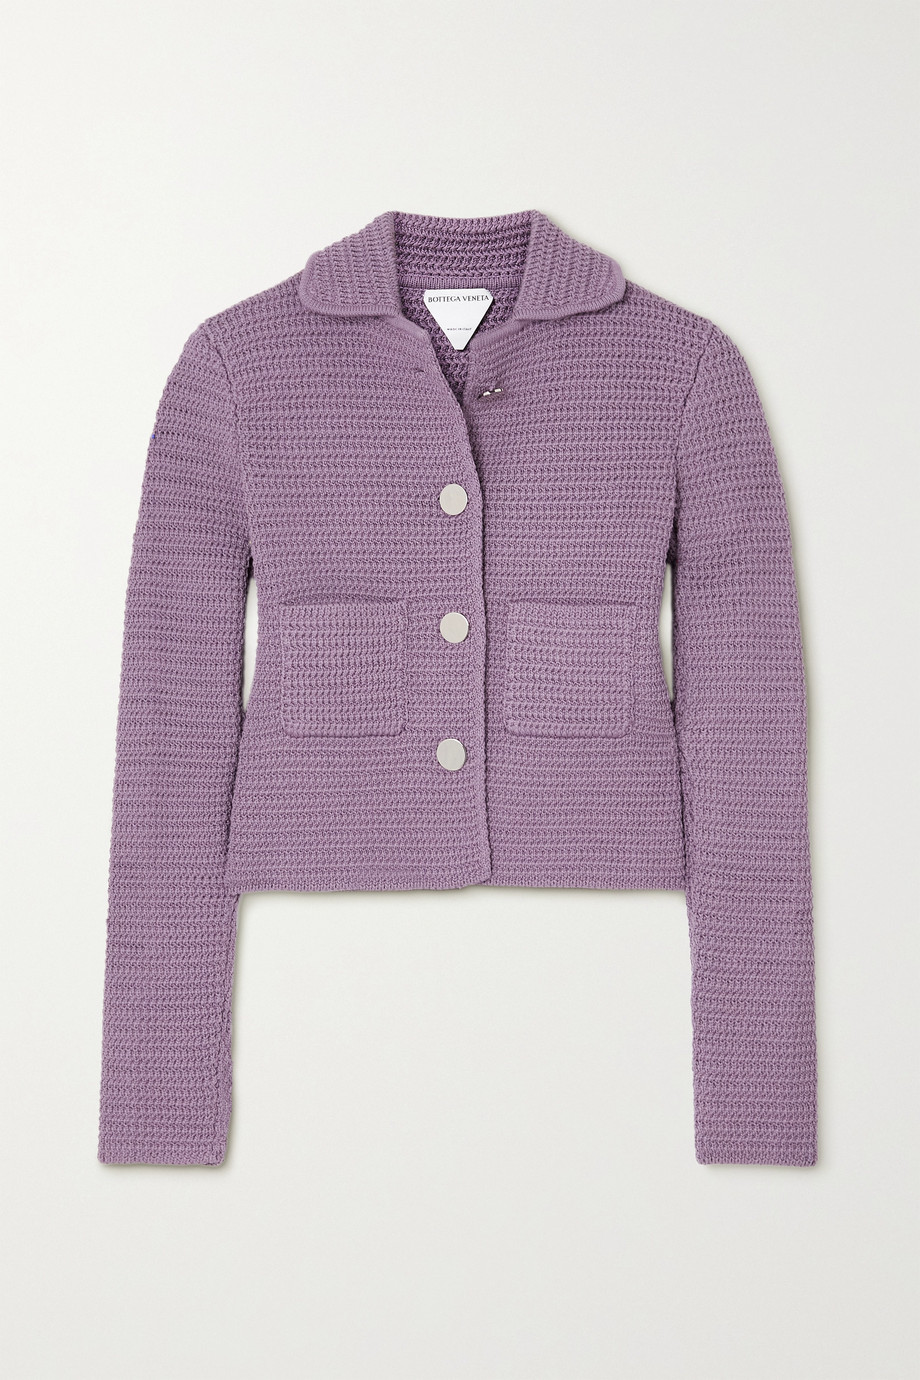 Bottega Veneta Cotton-blend jacket